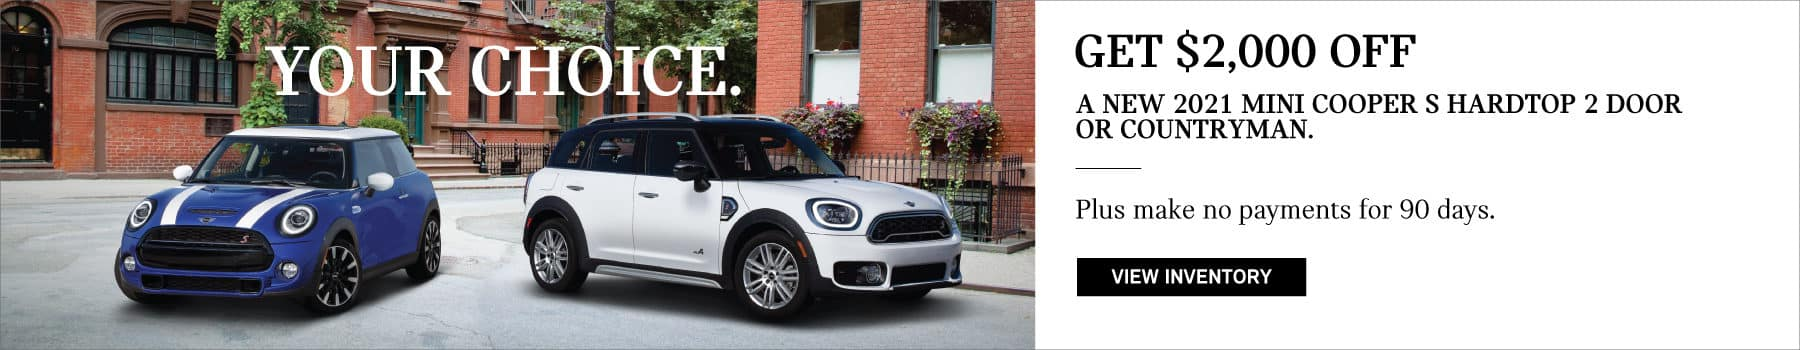 GET $2,000 OFF A NEW 2021 MINI COOPER S HARDTOP 2 DOOR OR A NEW 2021 MINI COOPER S COUNTRYMAN. PLUS, NO PAYMENTS FOR 90 DAYS. Your choice. See dealer for full details. Valid until 03/31/21. Click to view inventory. Picture shows a blue and white MINI Cooper S Hardtop 2 Door and a white MINI Cooper S Countryman parked in an urban square.